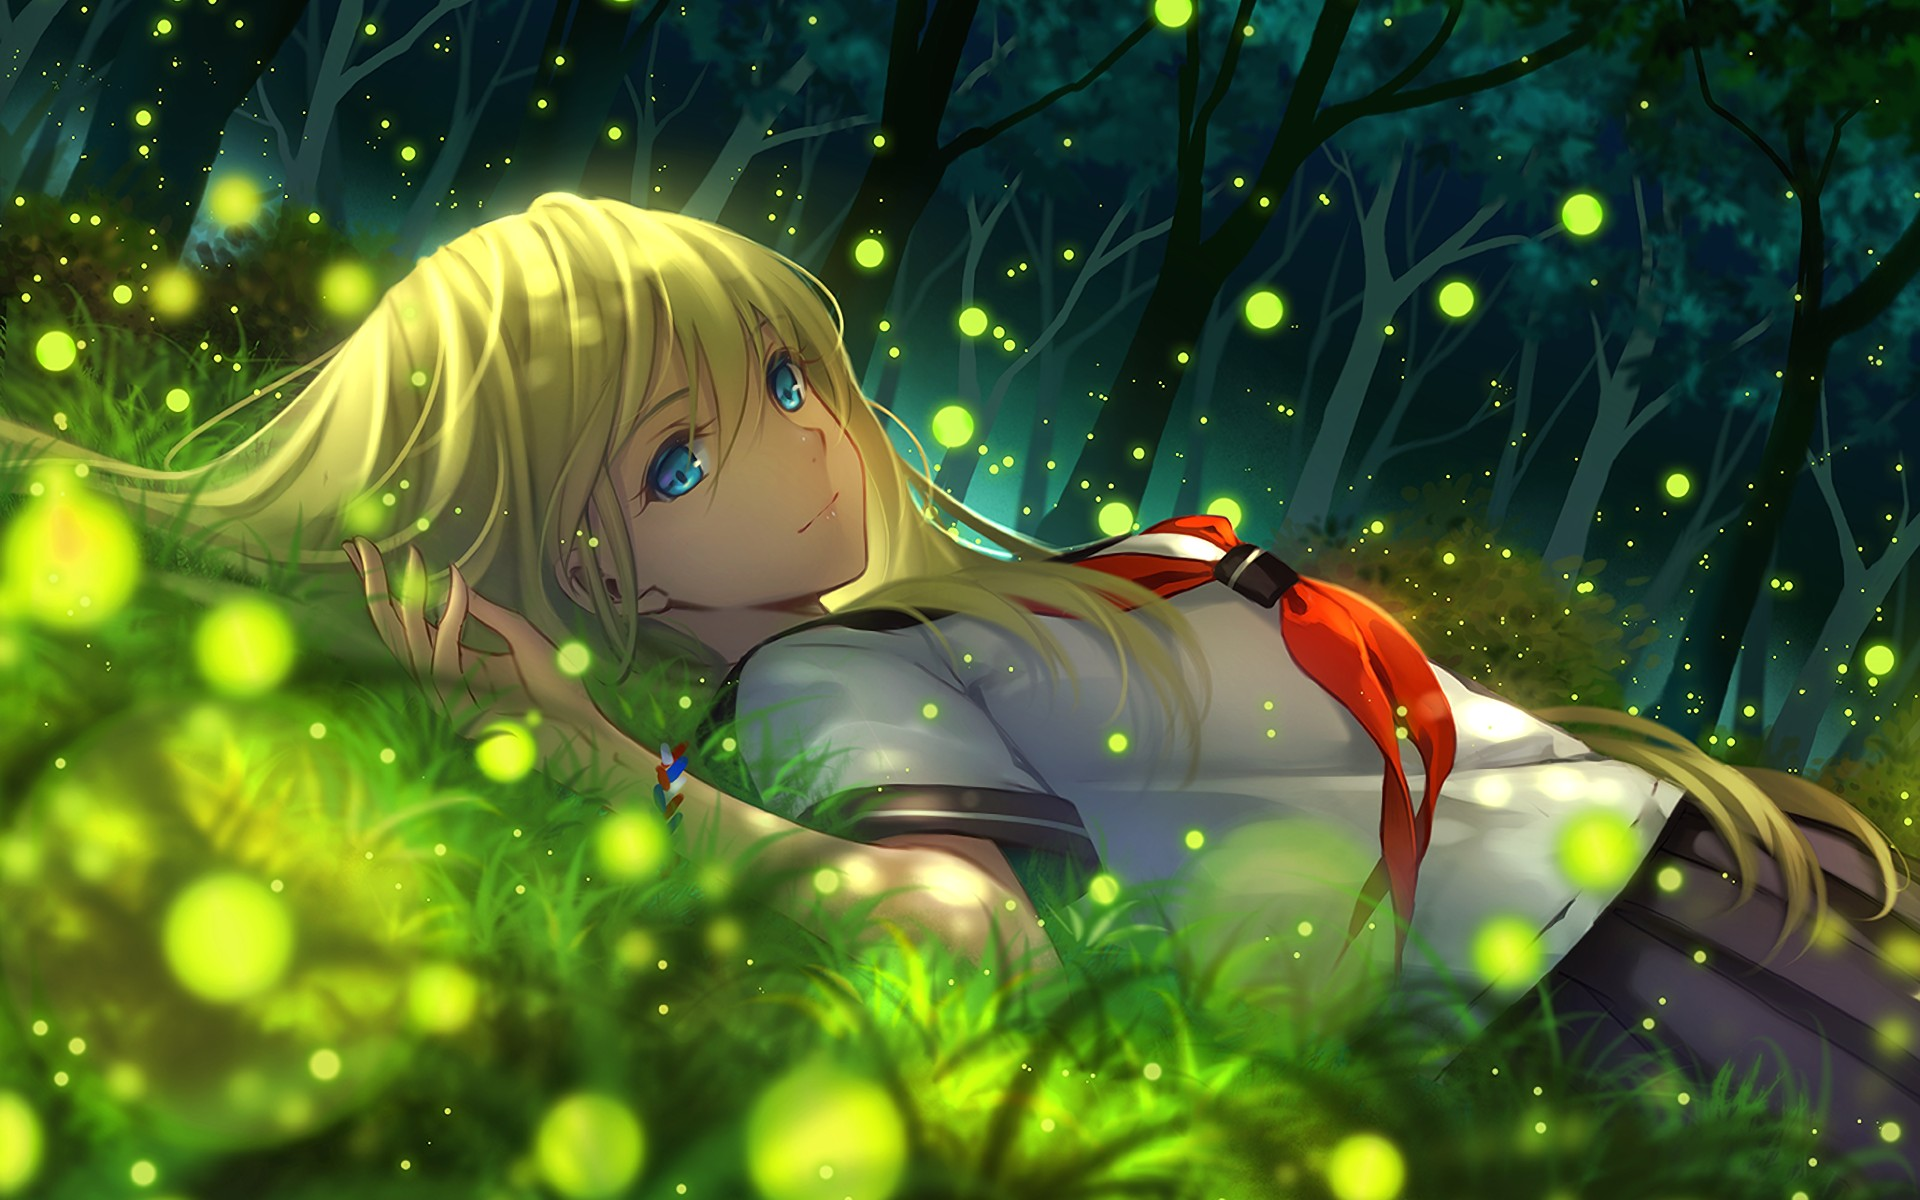 anime wallpaper ·① download free hd anime wallpapers for desktop